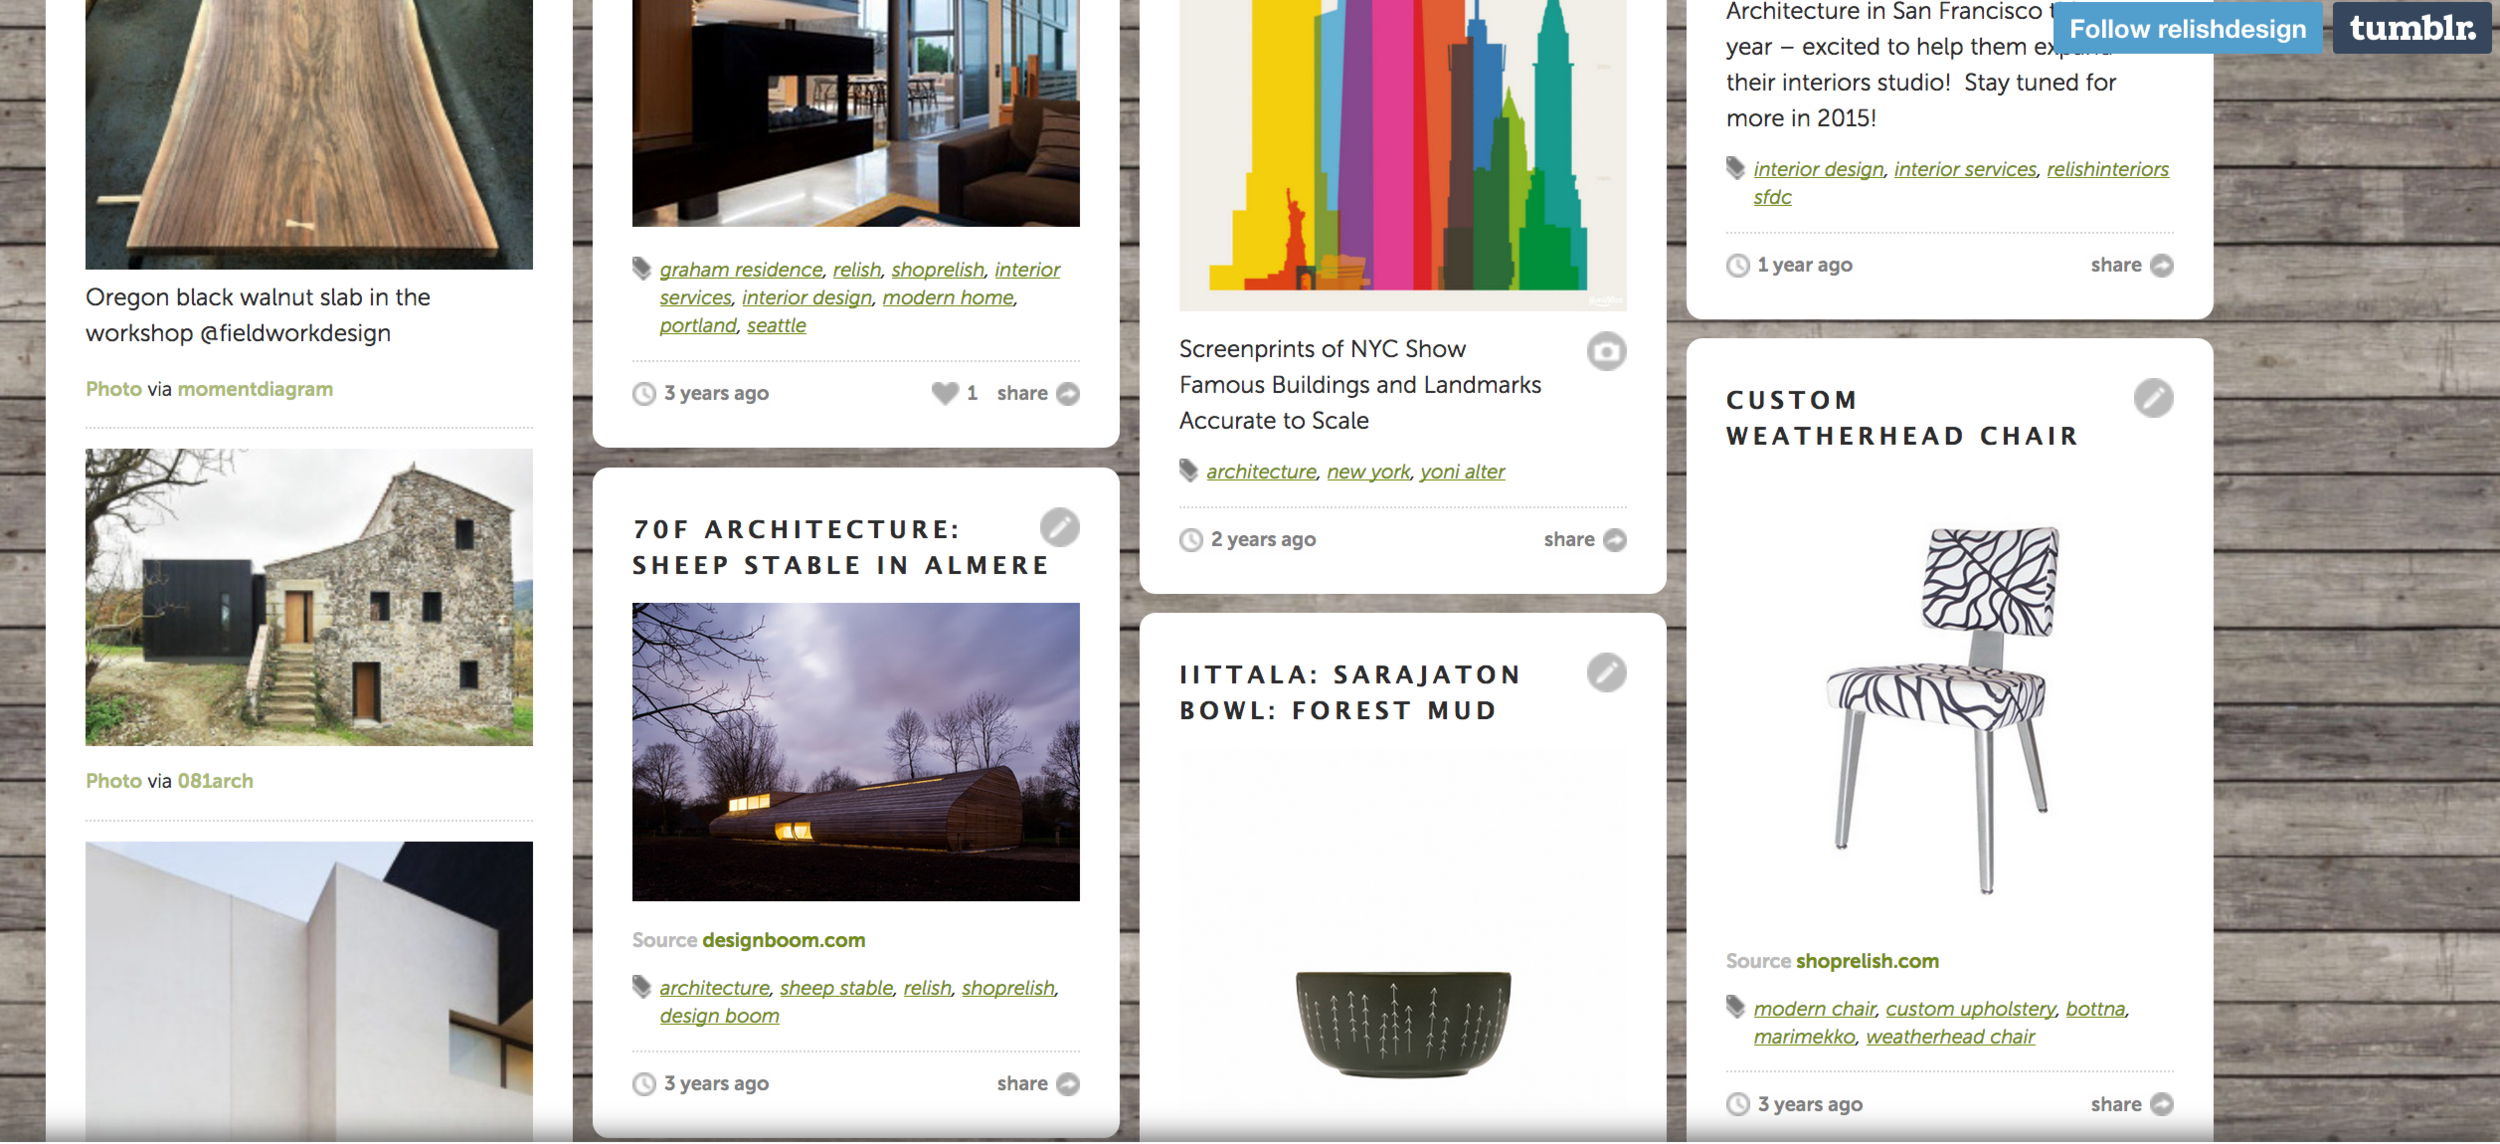 Tumblr  established, strategized, and maintained for  Relish Design , an interior design company, as a promotional tool